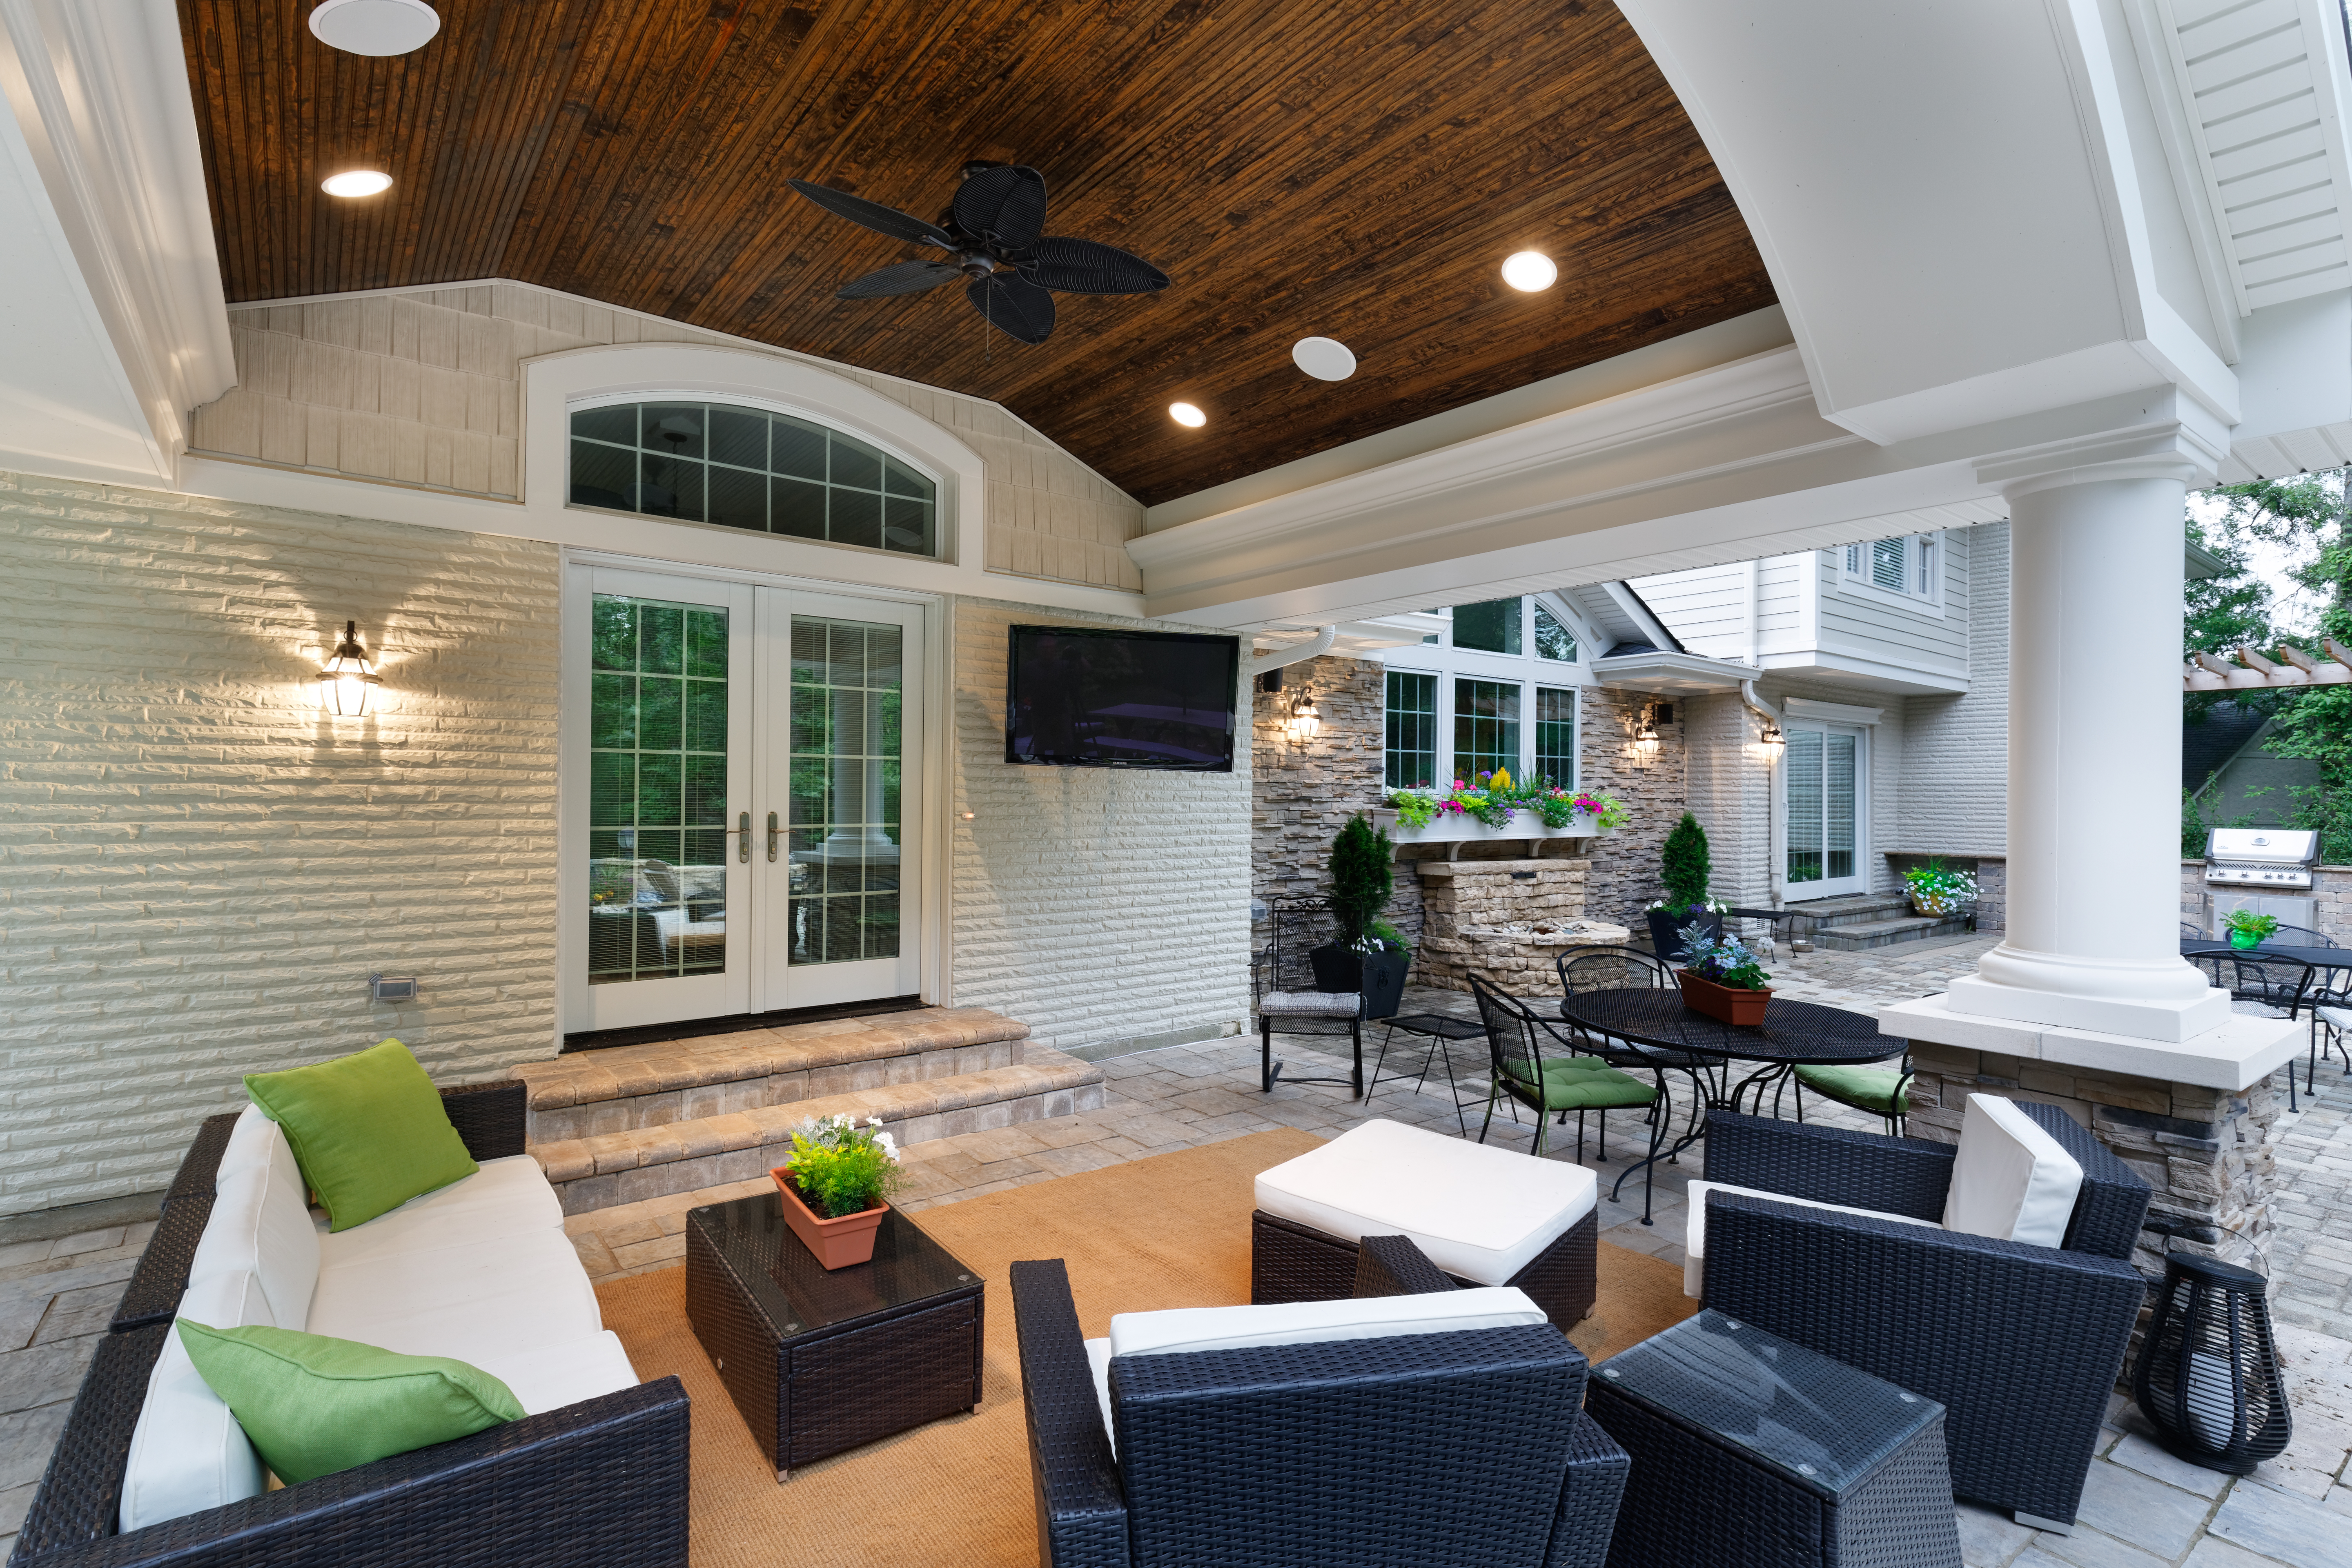 New Outdoor Living space in East Hyde Park designed by Wilcox Architecture